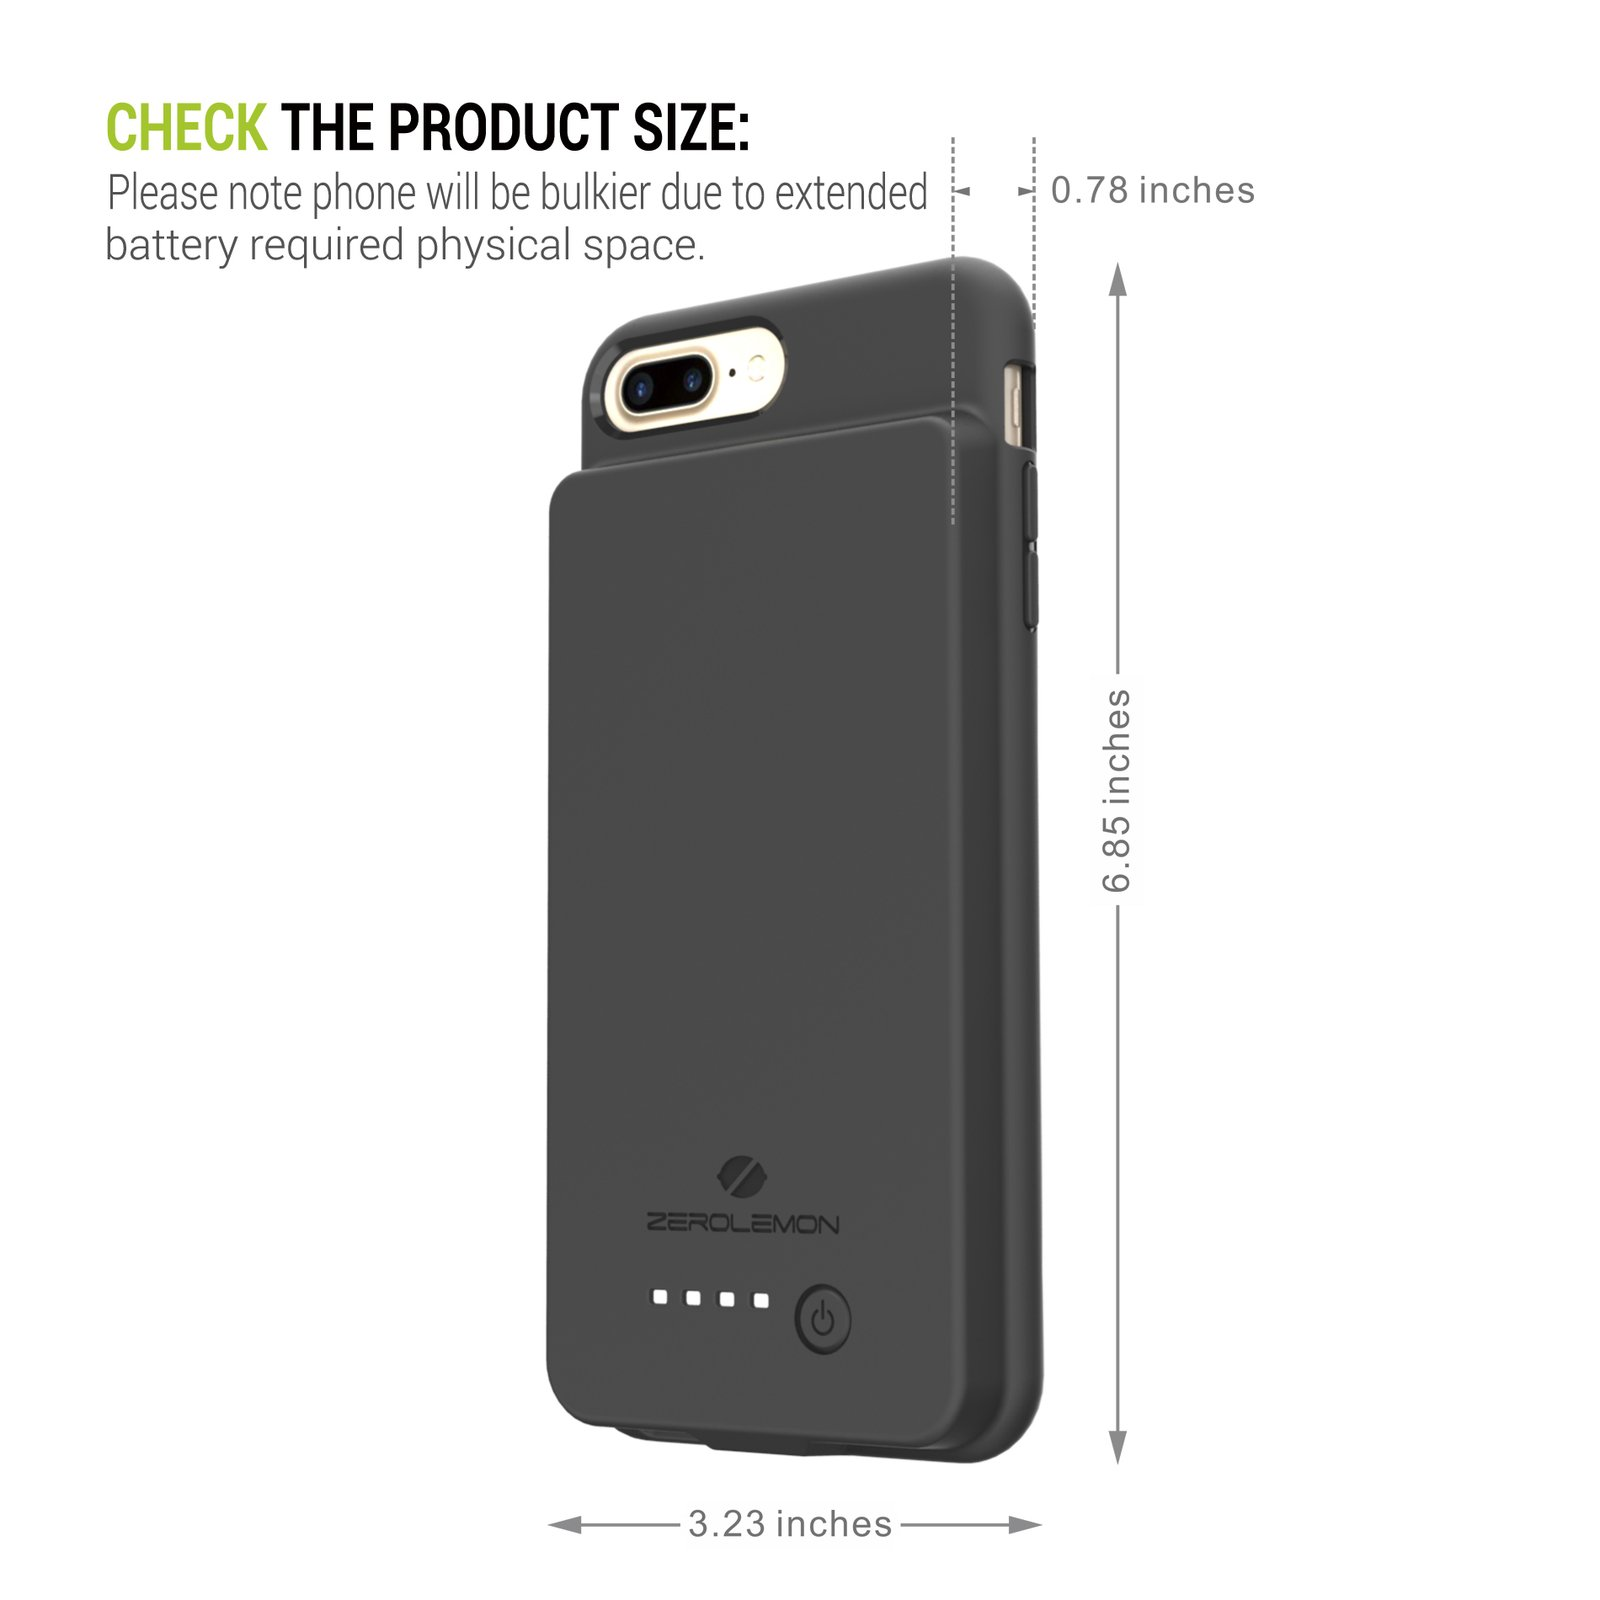 hot sale online 0b230 c991a iPhone 8 Plus/7 Plus Battery Case, ZeroLemon iPhone 8 Plus/7 Plus 10000mAh  Extended Battery with Soft TPU Full Edge Protective Case for iPhone 8 ...